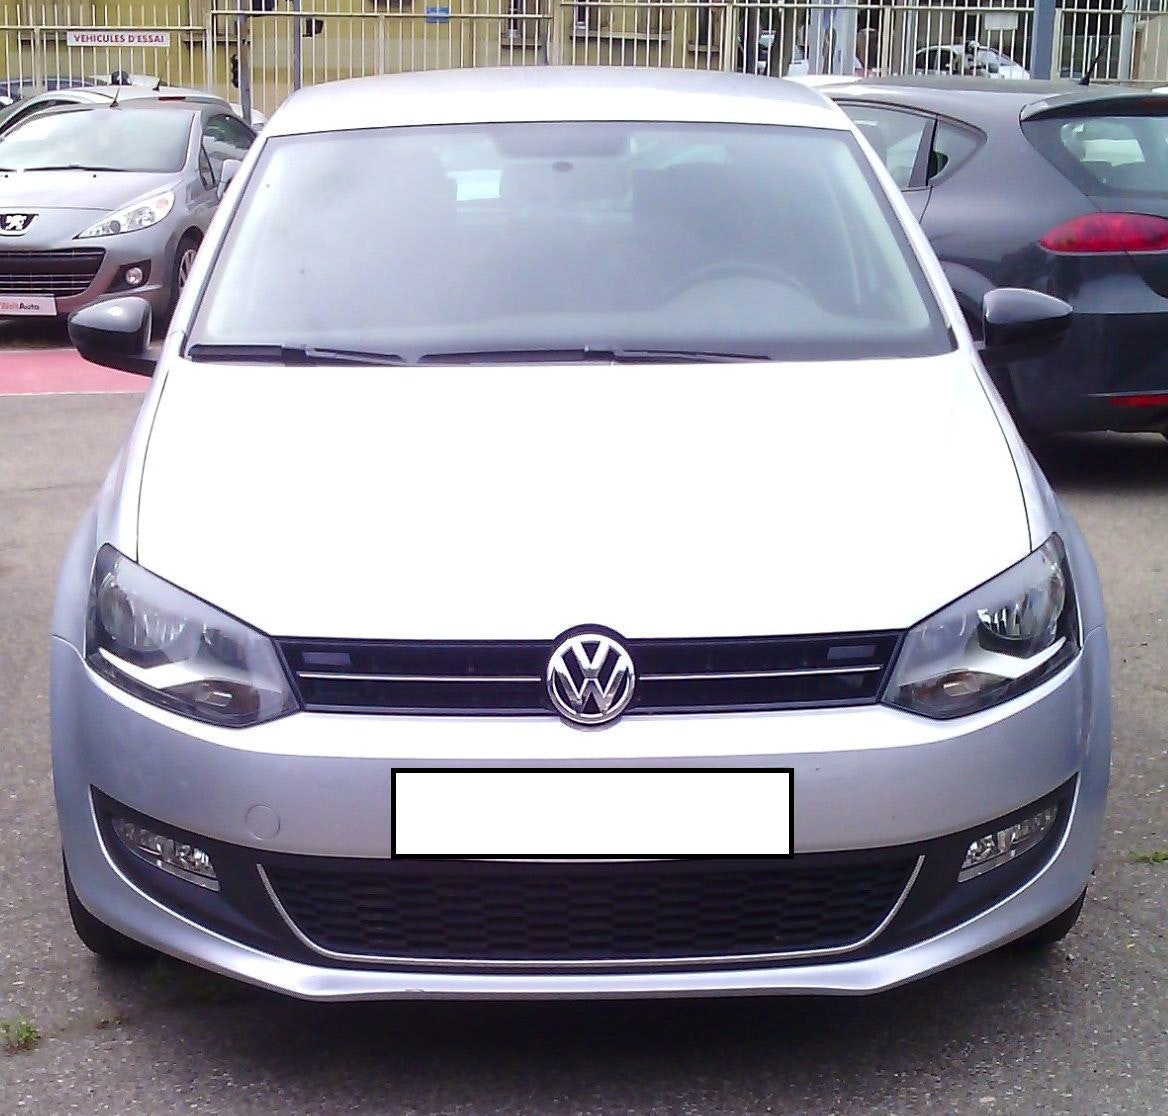 Volkswagen Polo 1.6 TDI 90 CH MATCH 5 P. Aéroport ou gare, 2013, Diesel